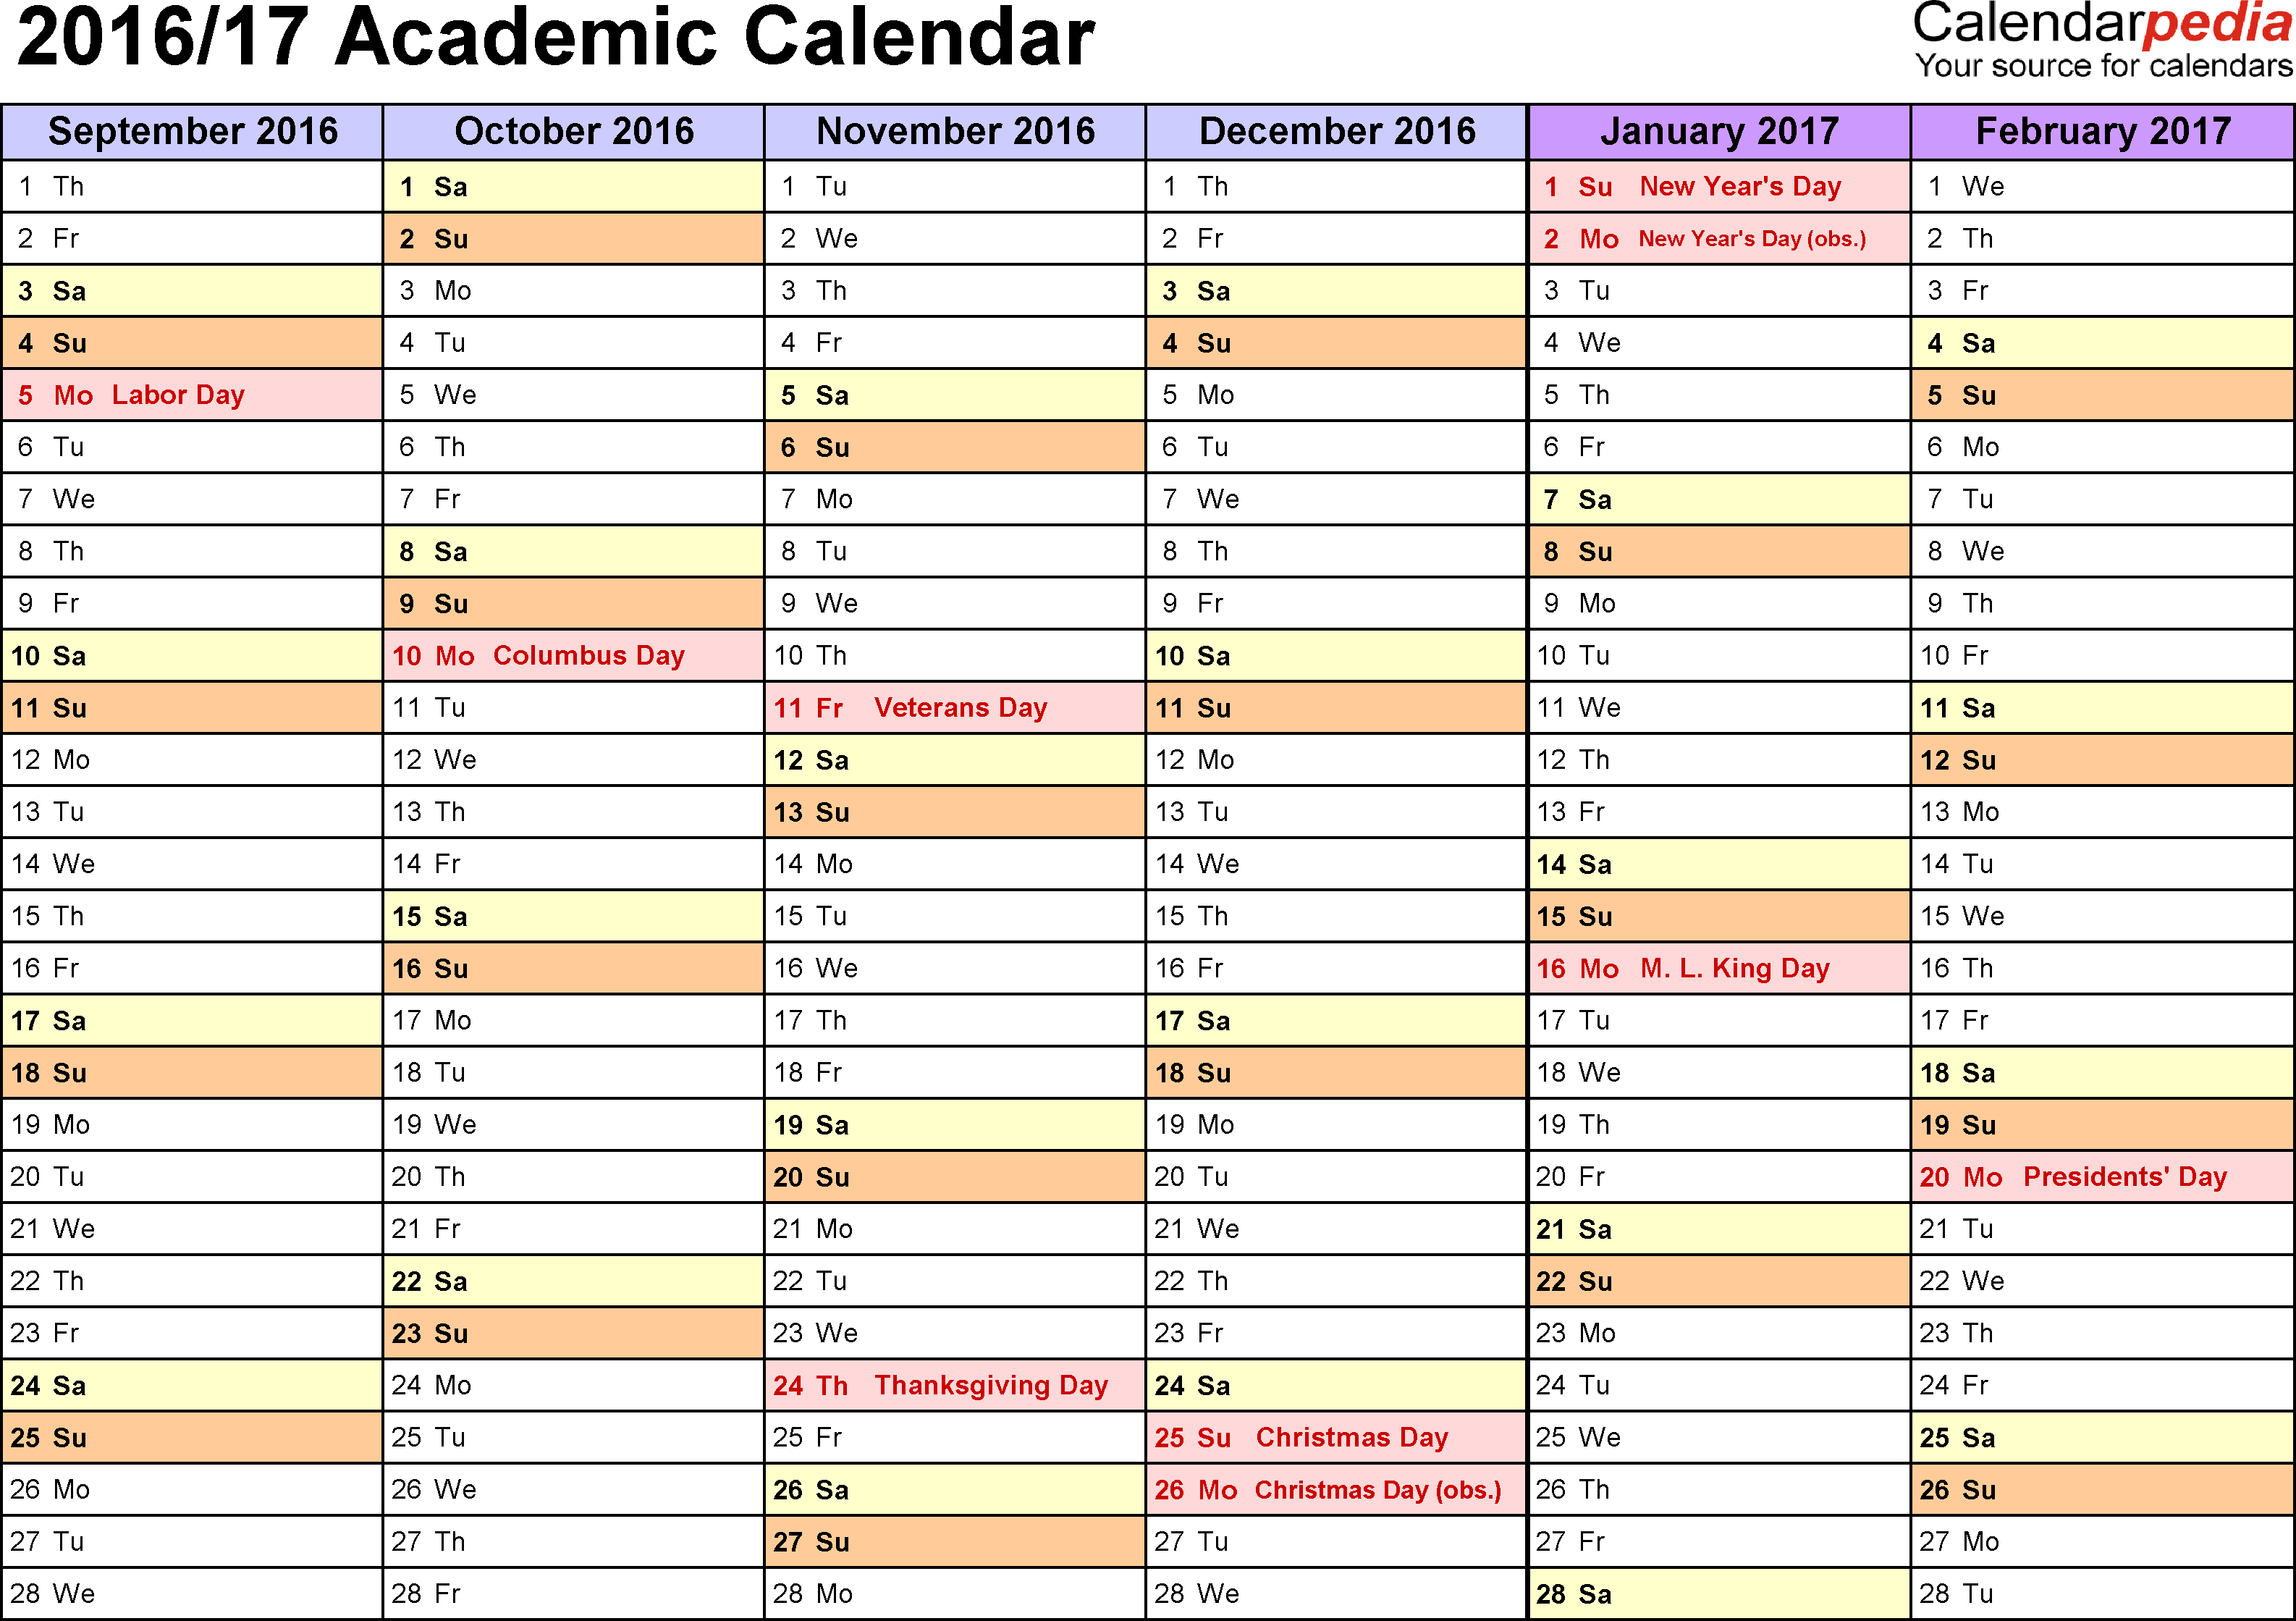 Template 3: Academic calendar 2016/17 for PDF, landscape orientation, months horizontally, 2 pages